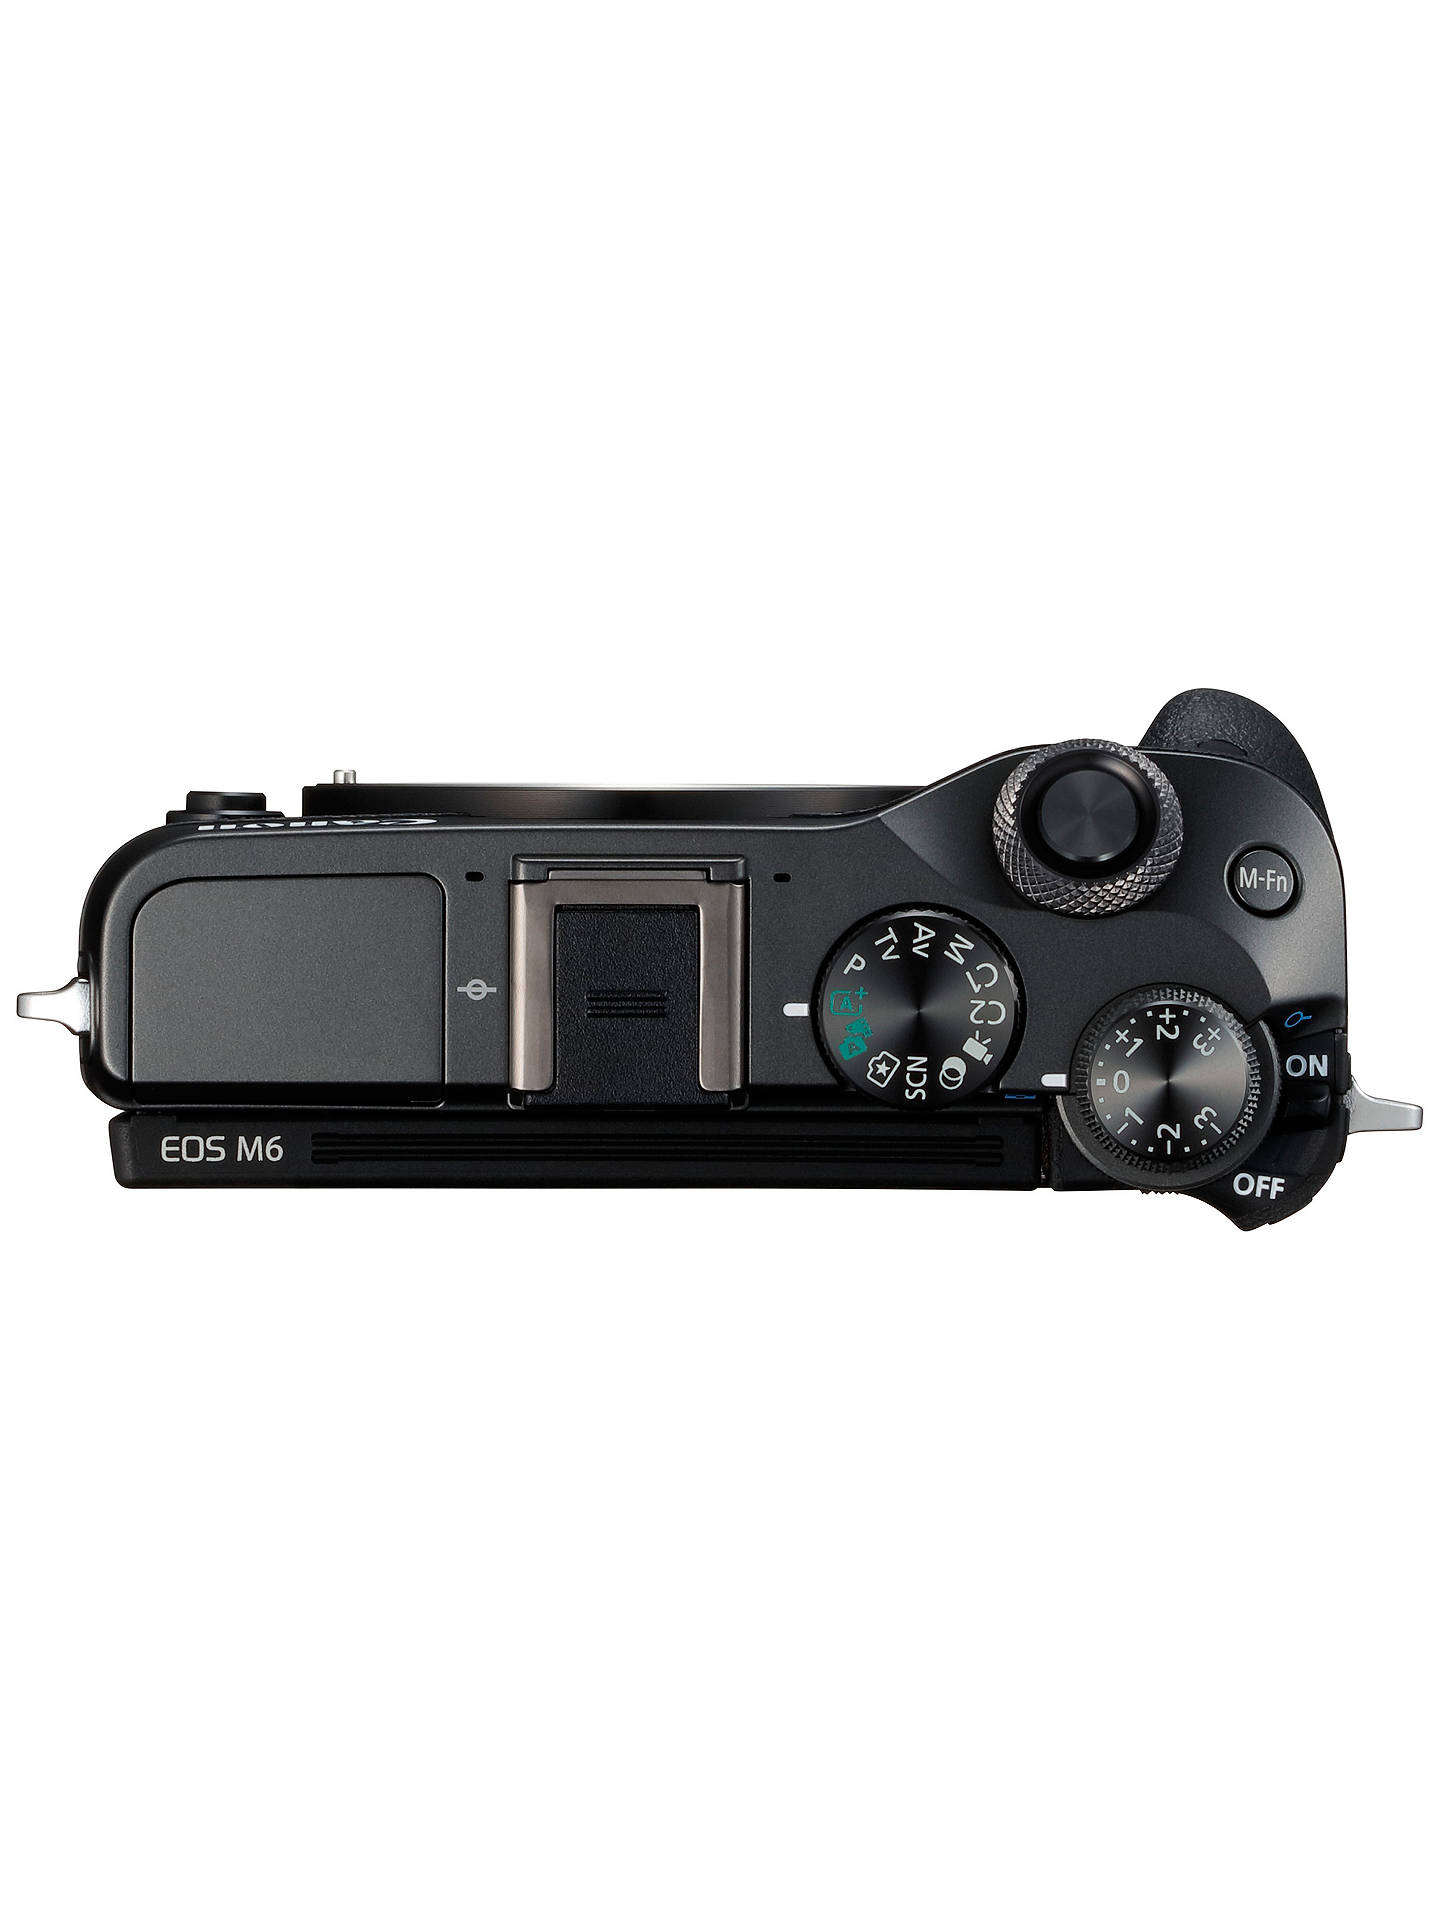 "BuyCanon EOS M6 Compact System Camera with EF-M 15-45mm IS STM Lens, HD 1080p, 24.2MP, Wi-Fi, Bluetooth, NFC, 3.0"" LCD Tiltable Touch Screen, Black Online at johnlewis.com"